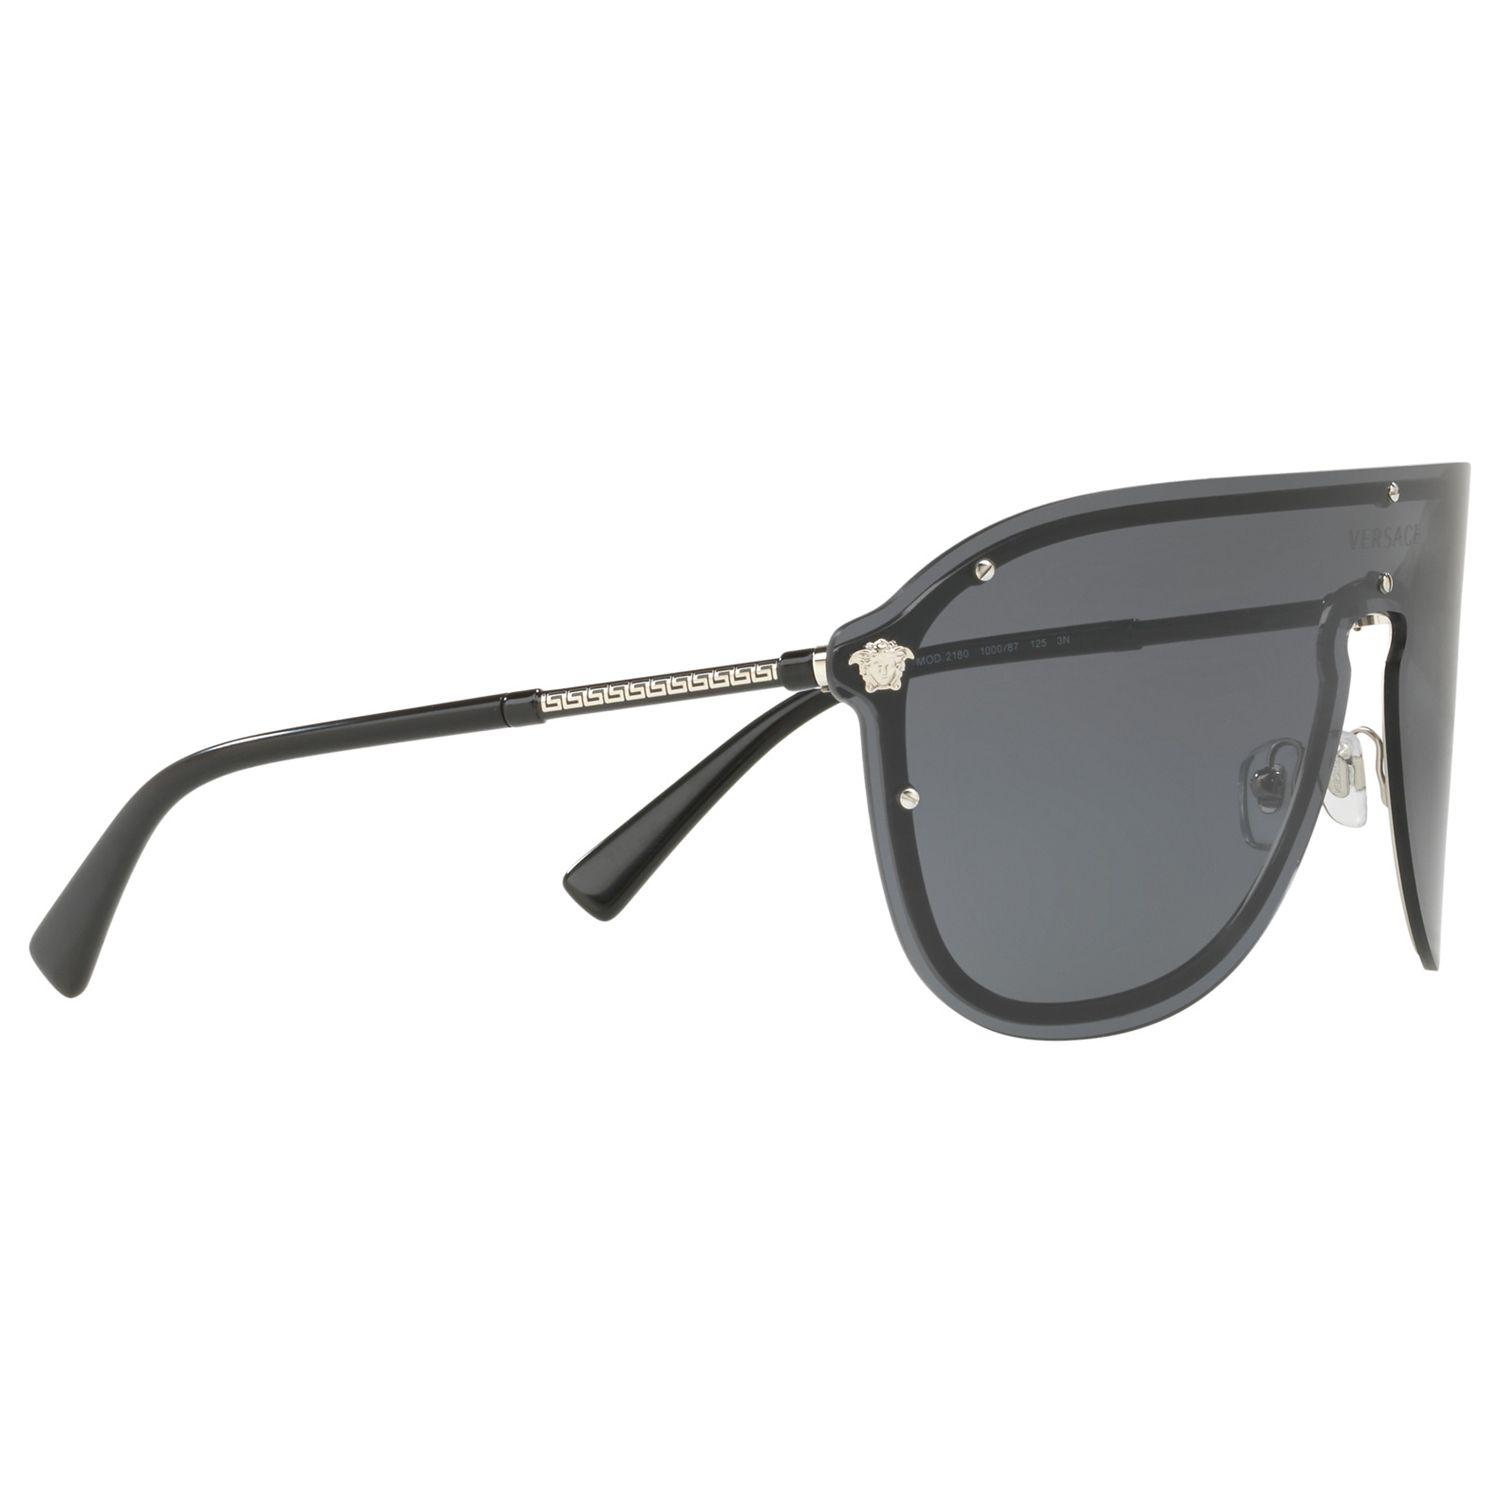 e961bdb416c Versace - Multicolor Ve2180 Women s Aviator Sunglasses - Lyst. View  fullscreen